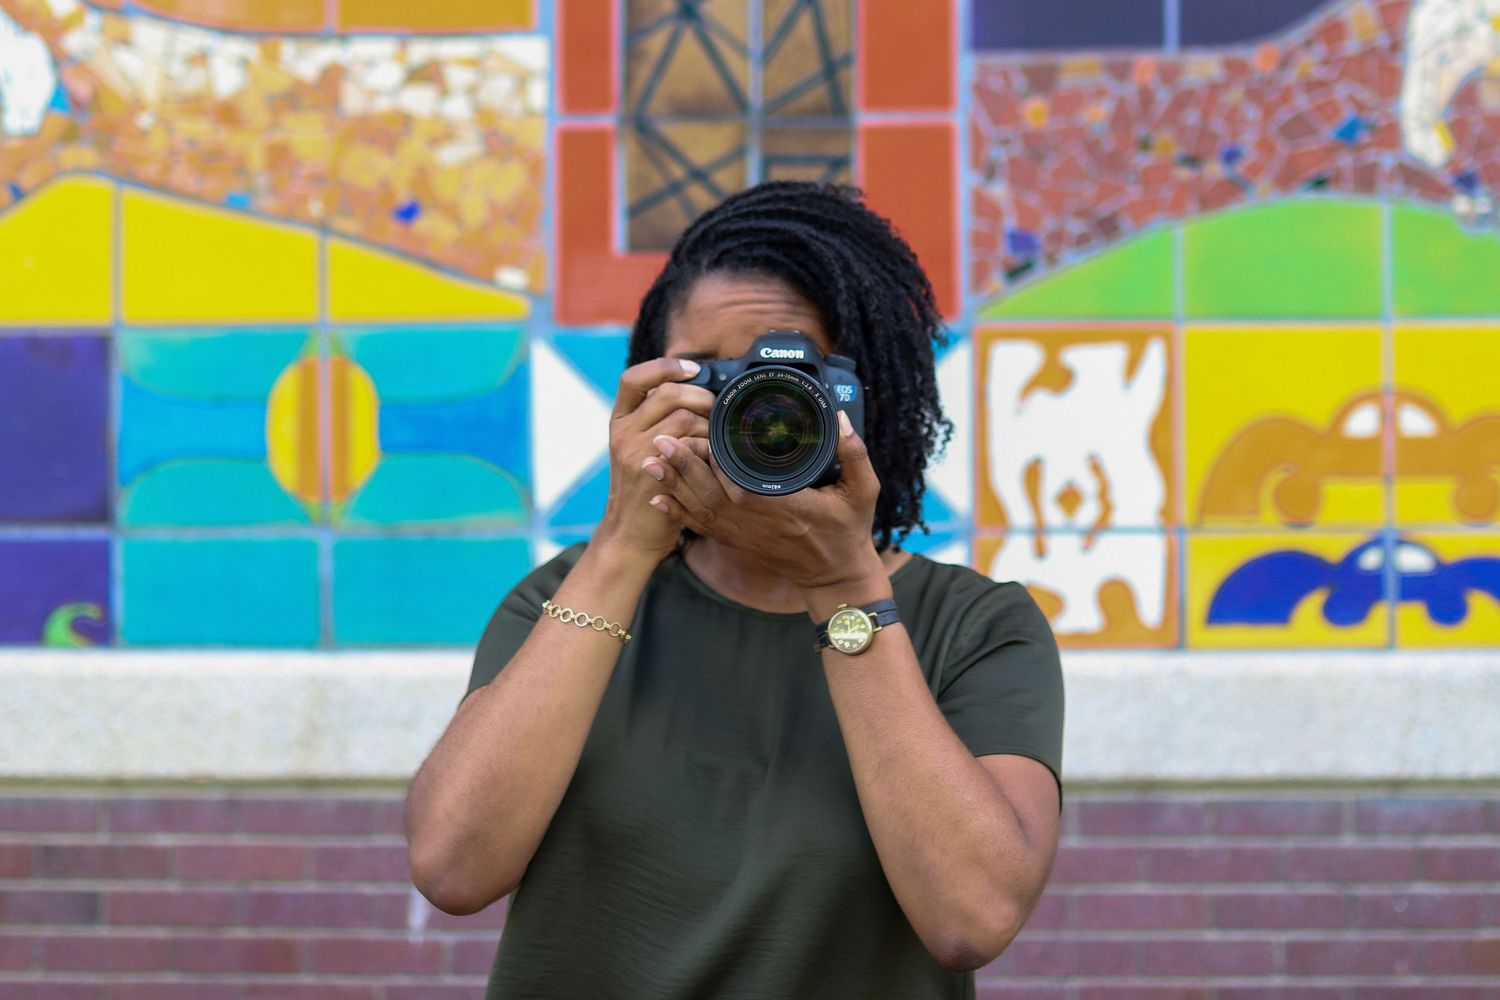 Image of RED by Morgan owner and photographer in front of a colorful mural holding a camera preparing to shoot head-on.